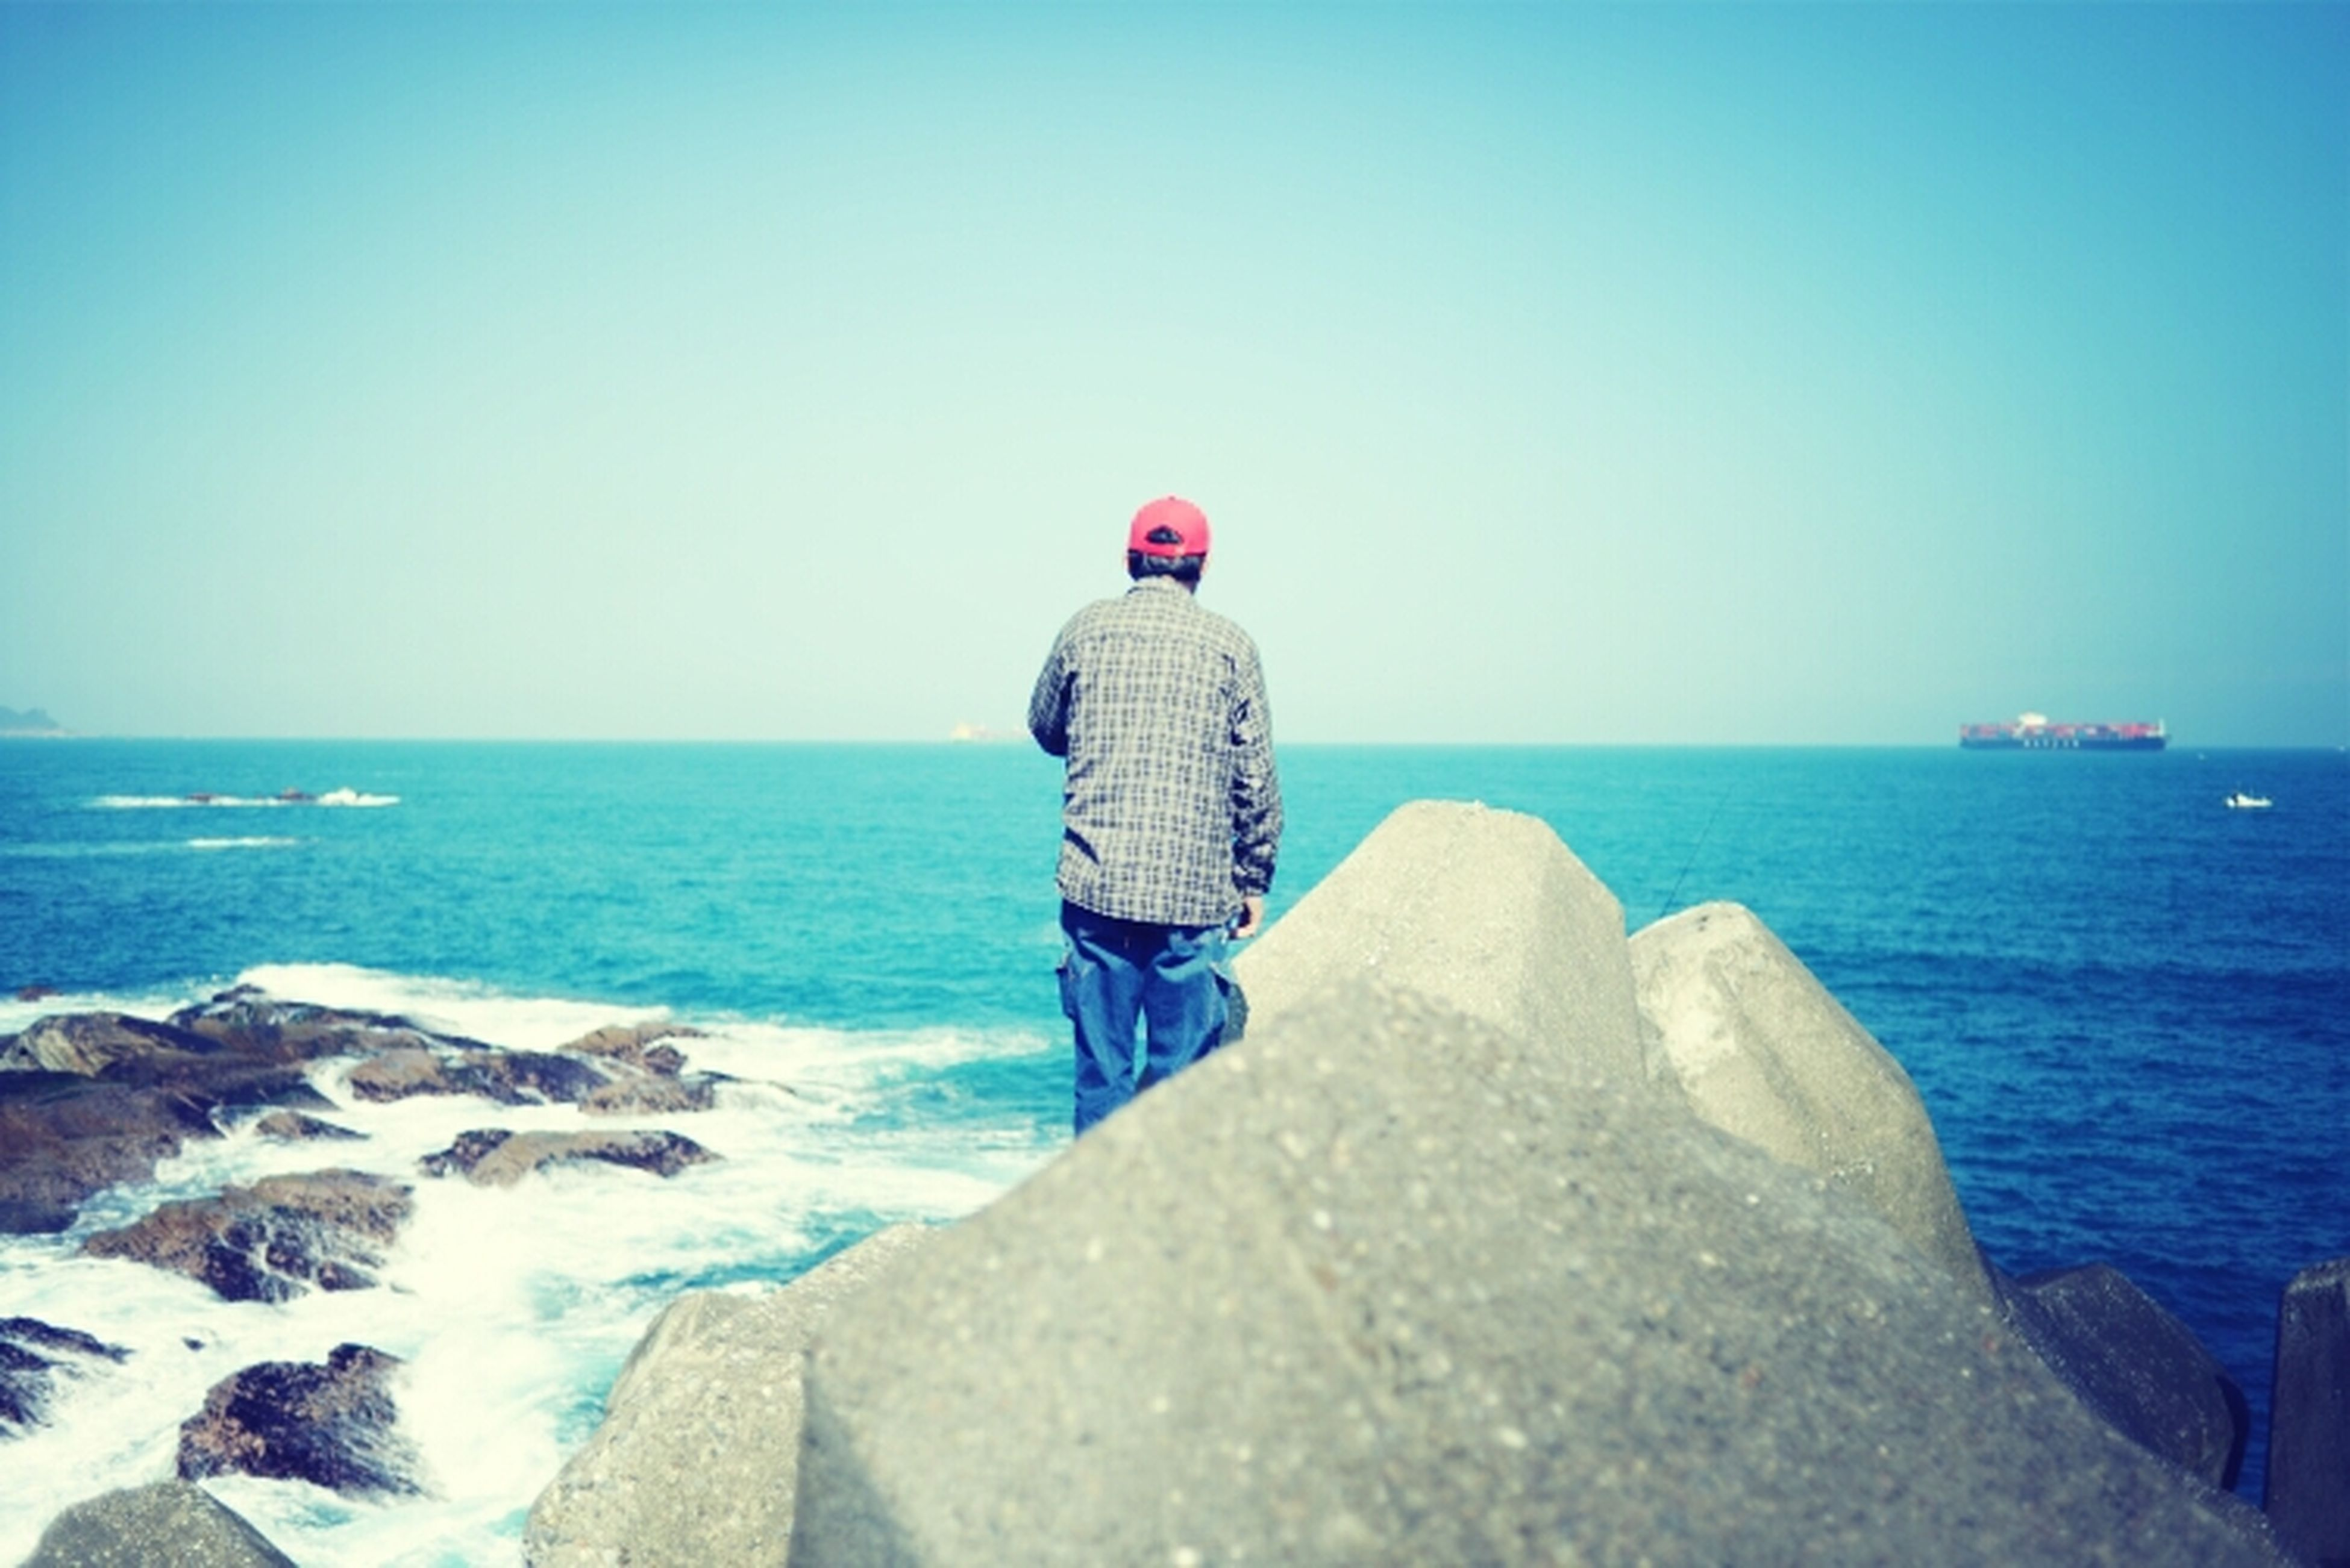 sea, horizon over water, water, rear view, clear sky, lifestyles, leisure activity, full length, standing, copy space, blue, rock - object, casual clothing, scenics, beach, tranquil scene, tranquility, beauty in nature